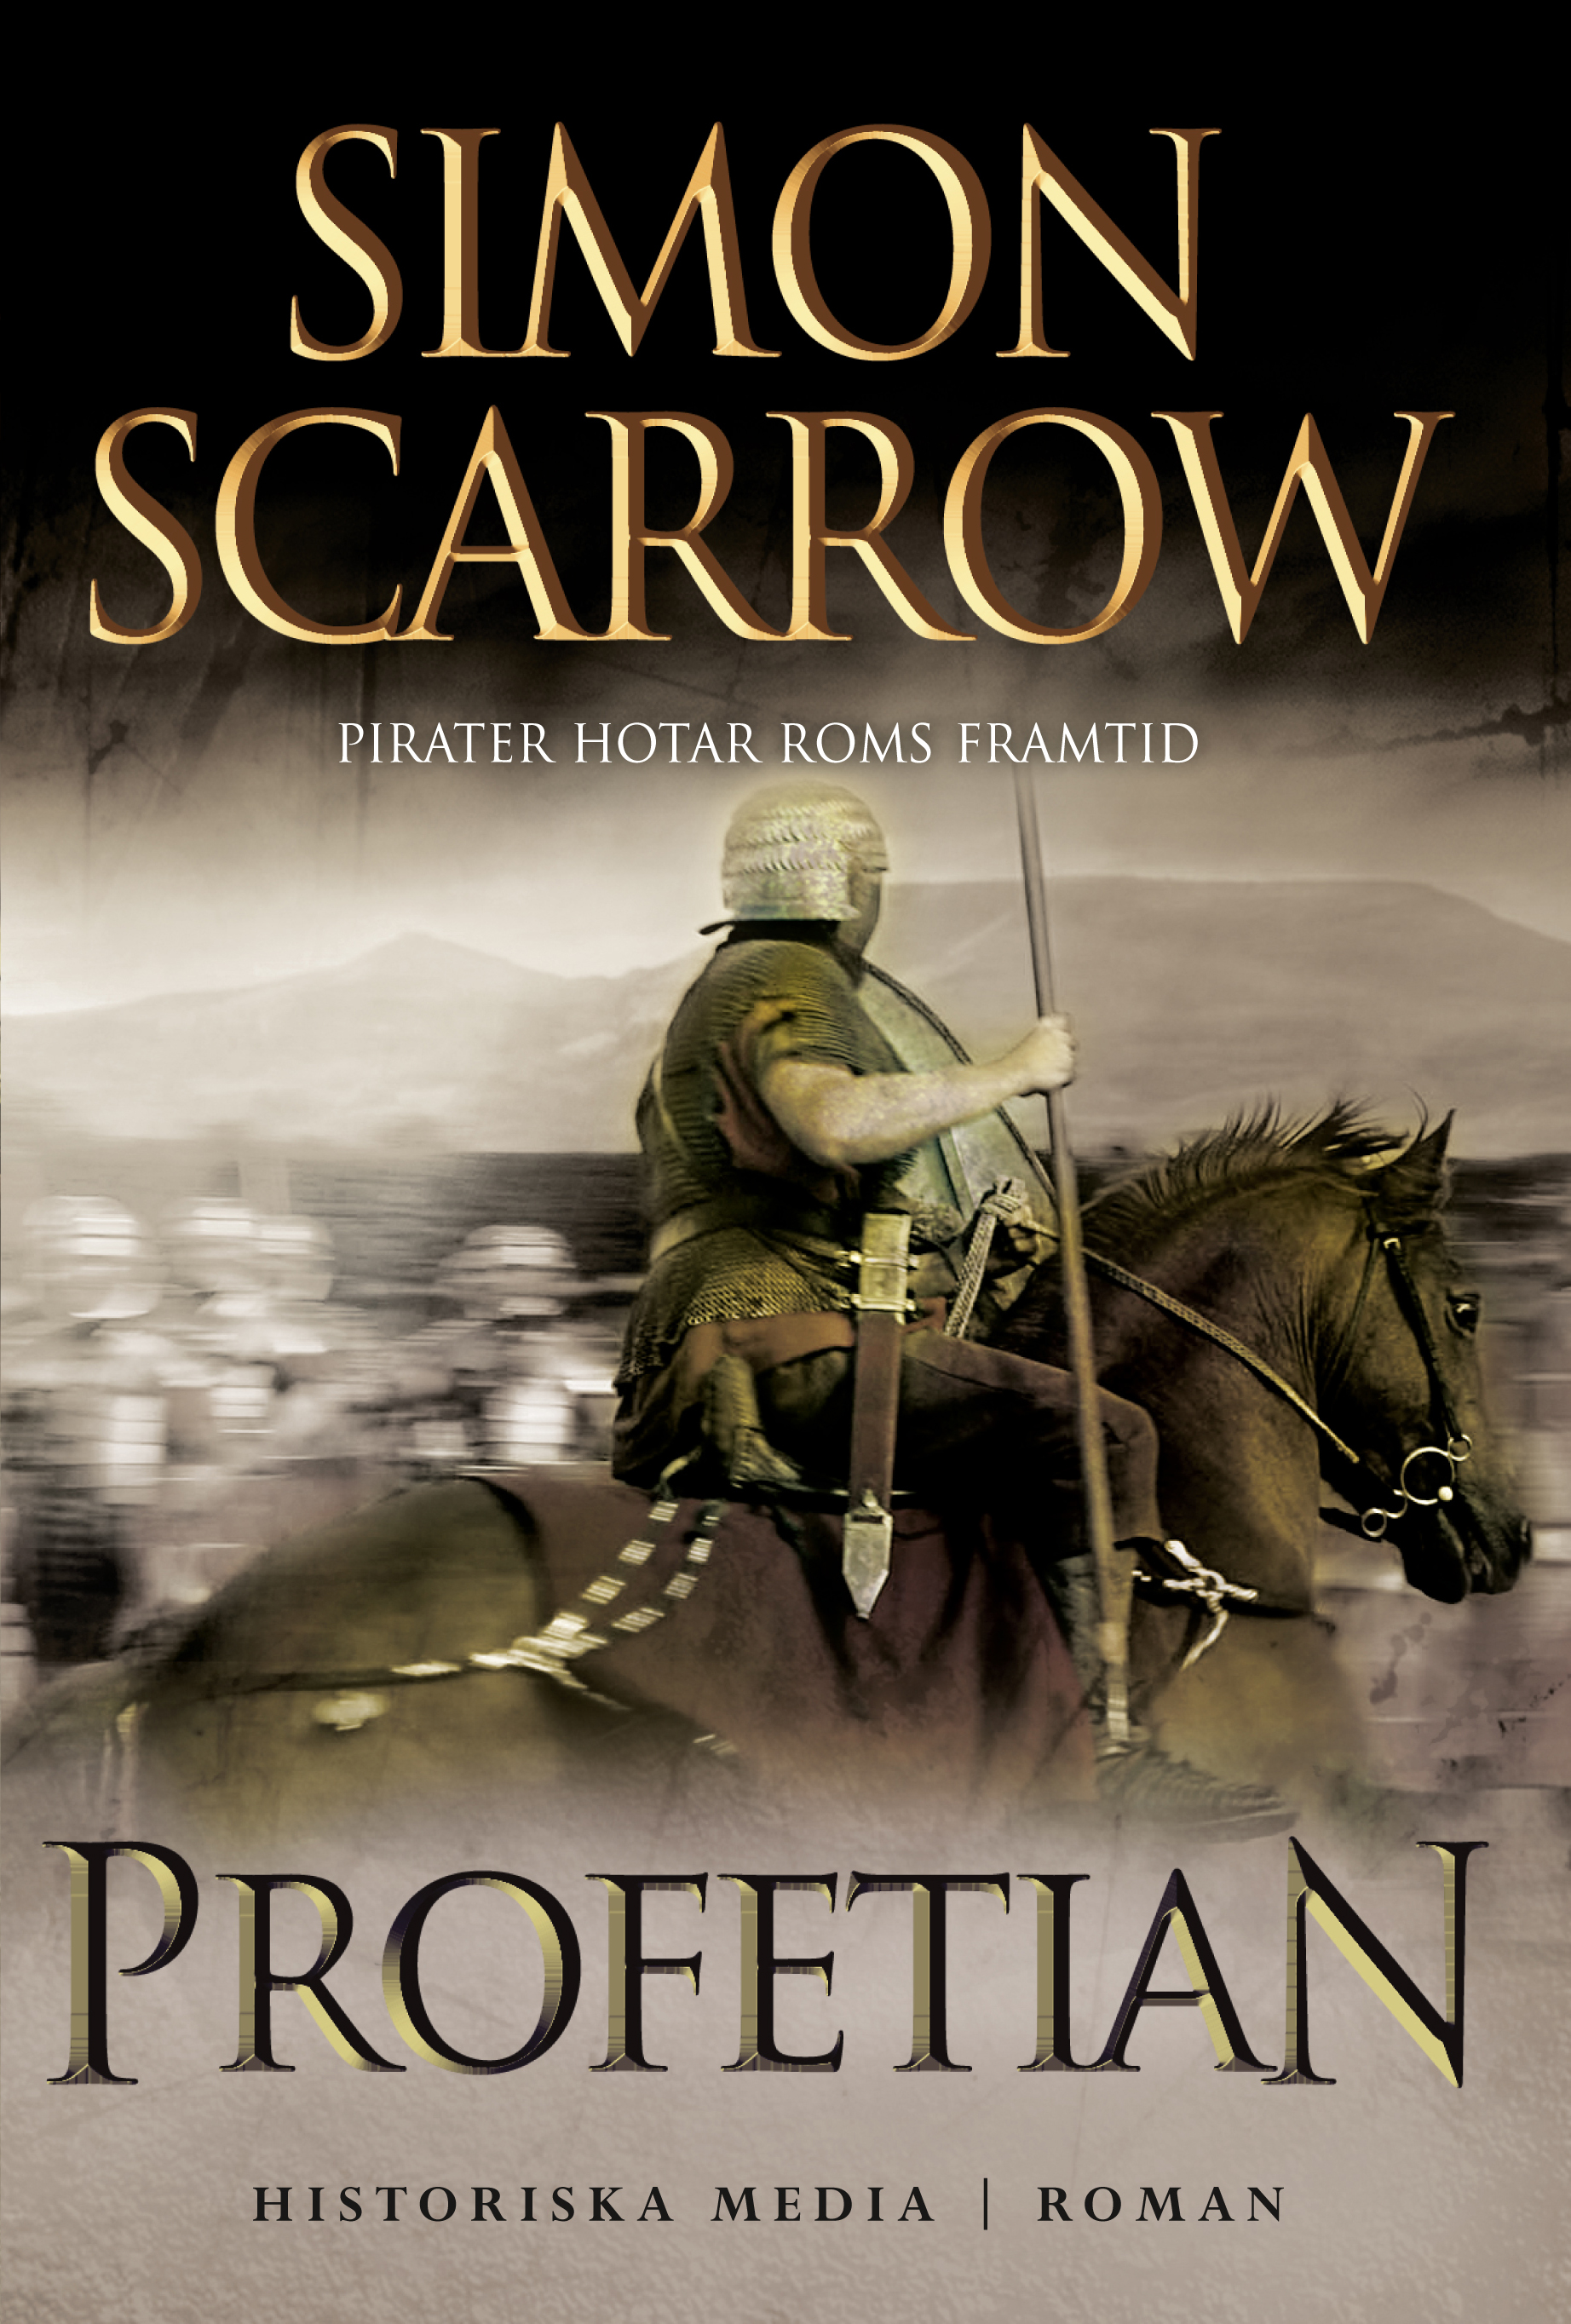 Profetian - Simon Scarrow